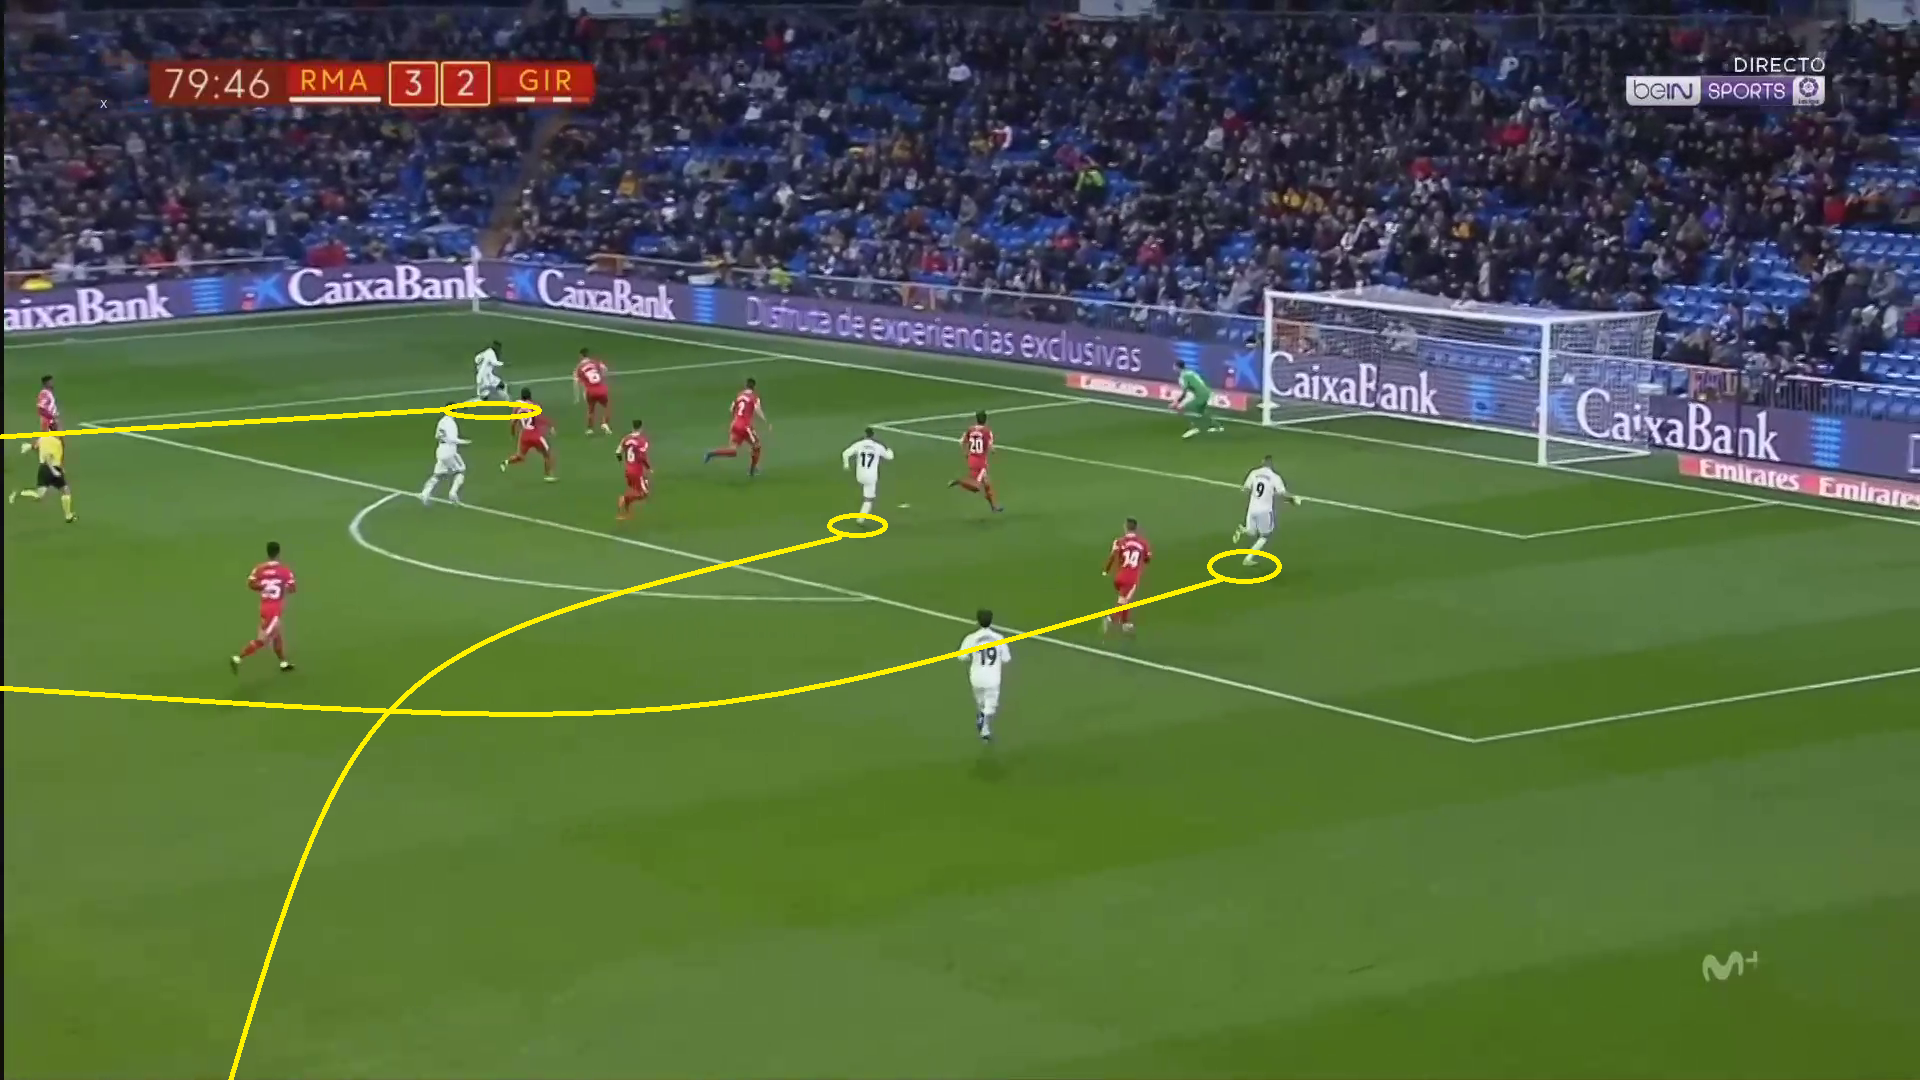 Real Madrid Girona Copa del Rey Tactical analysis Statistics